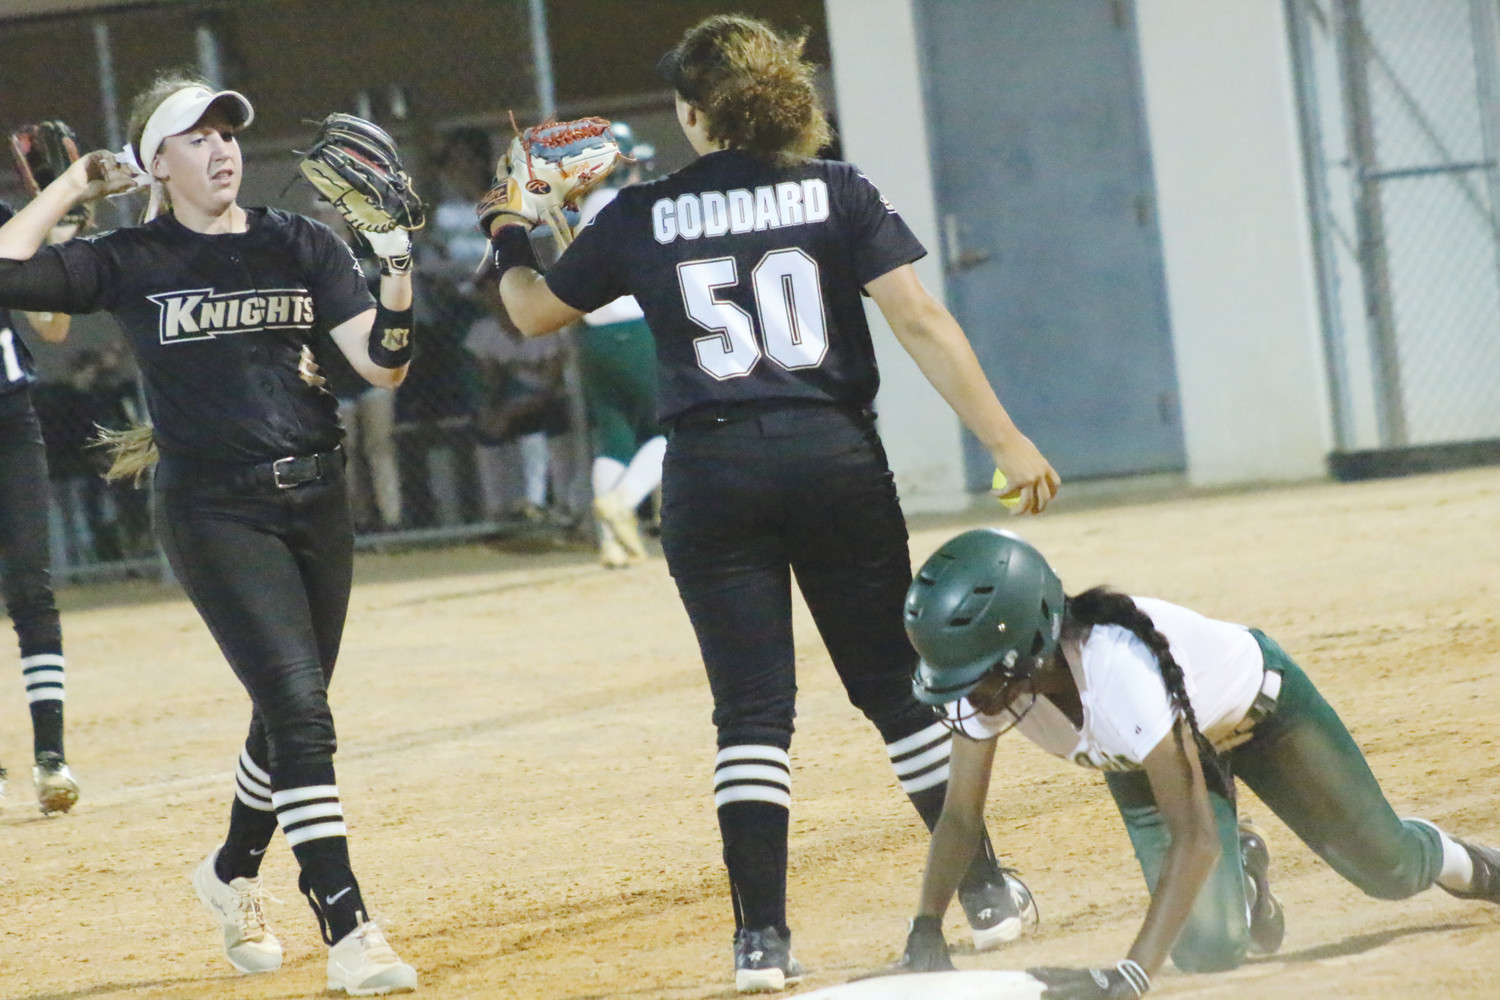 Oakleaf High got a stellar double play from second baseman Rebecca Koskey, left, and third baseman Baylee Goddard in late innings of Knights' 2-1 region playoff win over Lincoln.